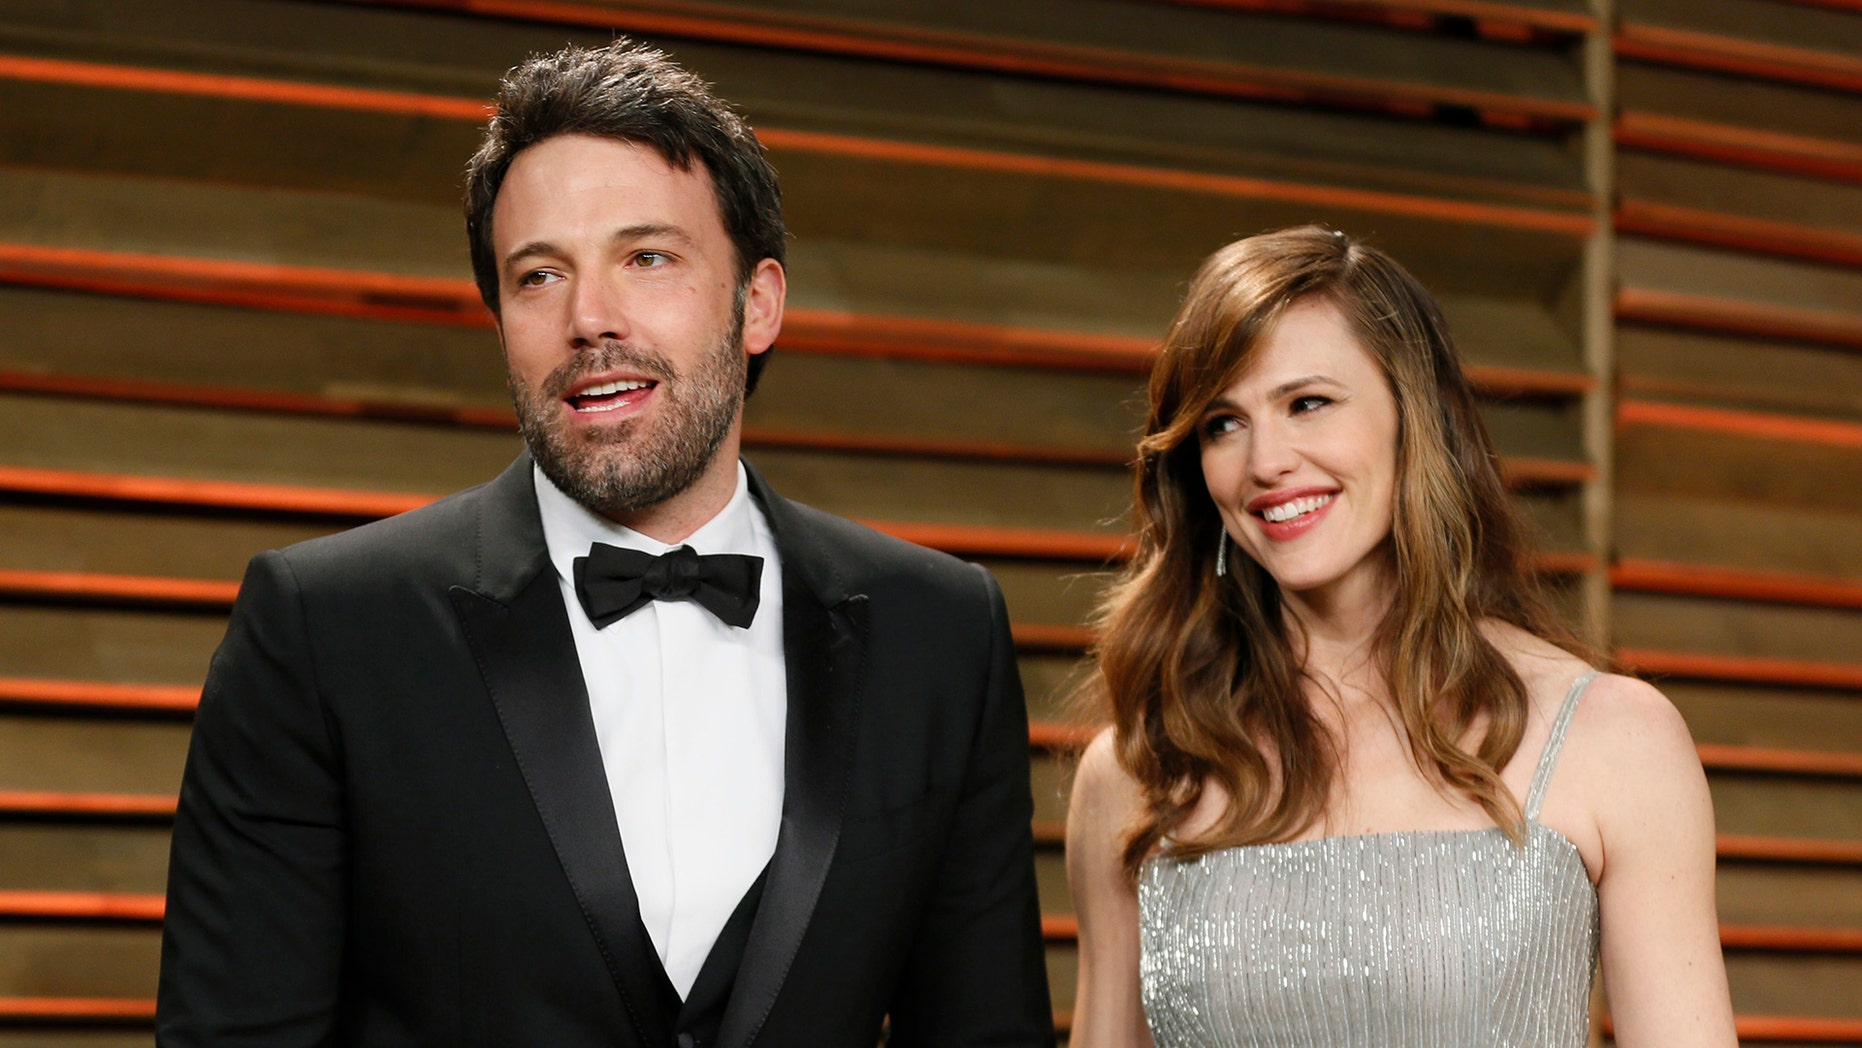 ctor Ben Affleck and his wife, actress Jennifer Garner arrive at the 2014 Vanity Fair Oscars Party in West Hollywood, California March 2, 2014.